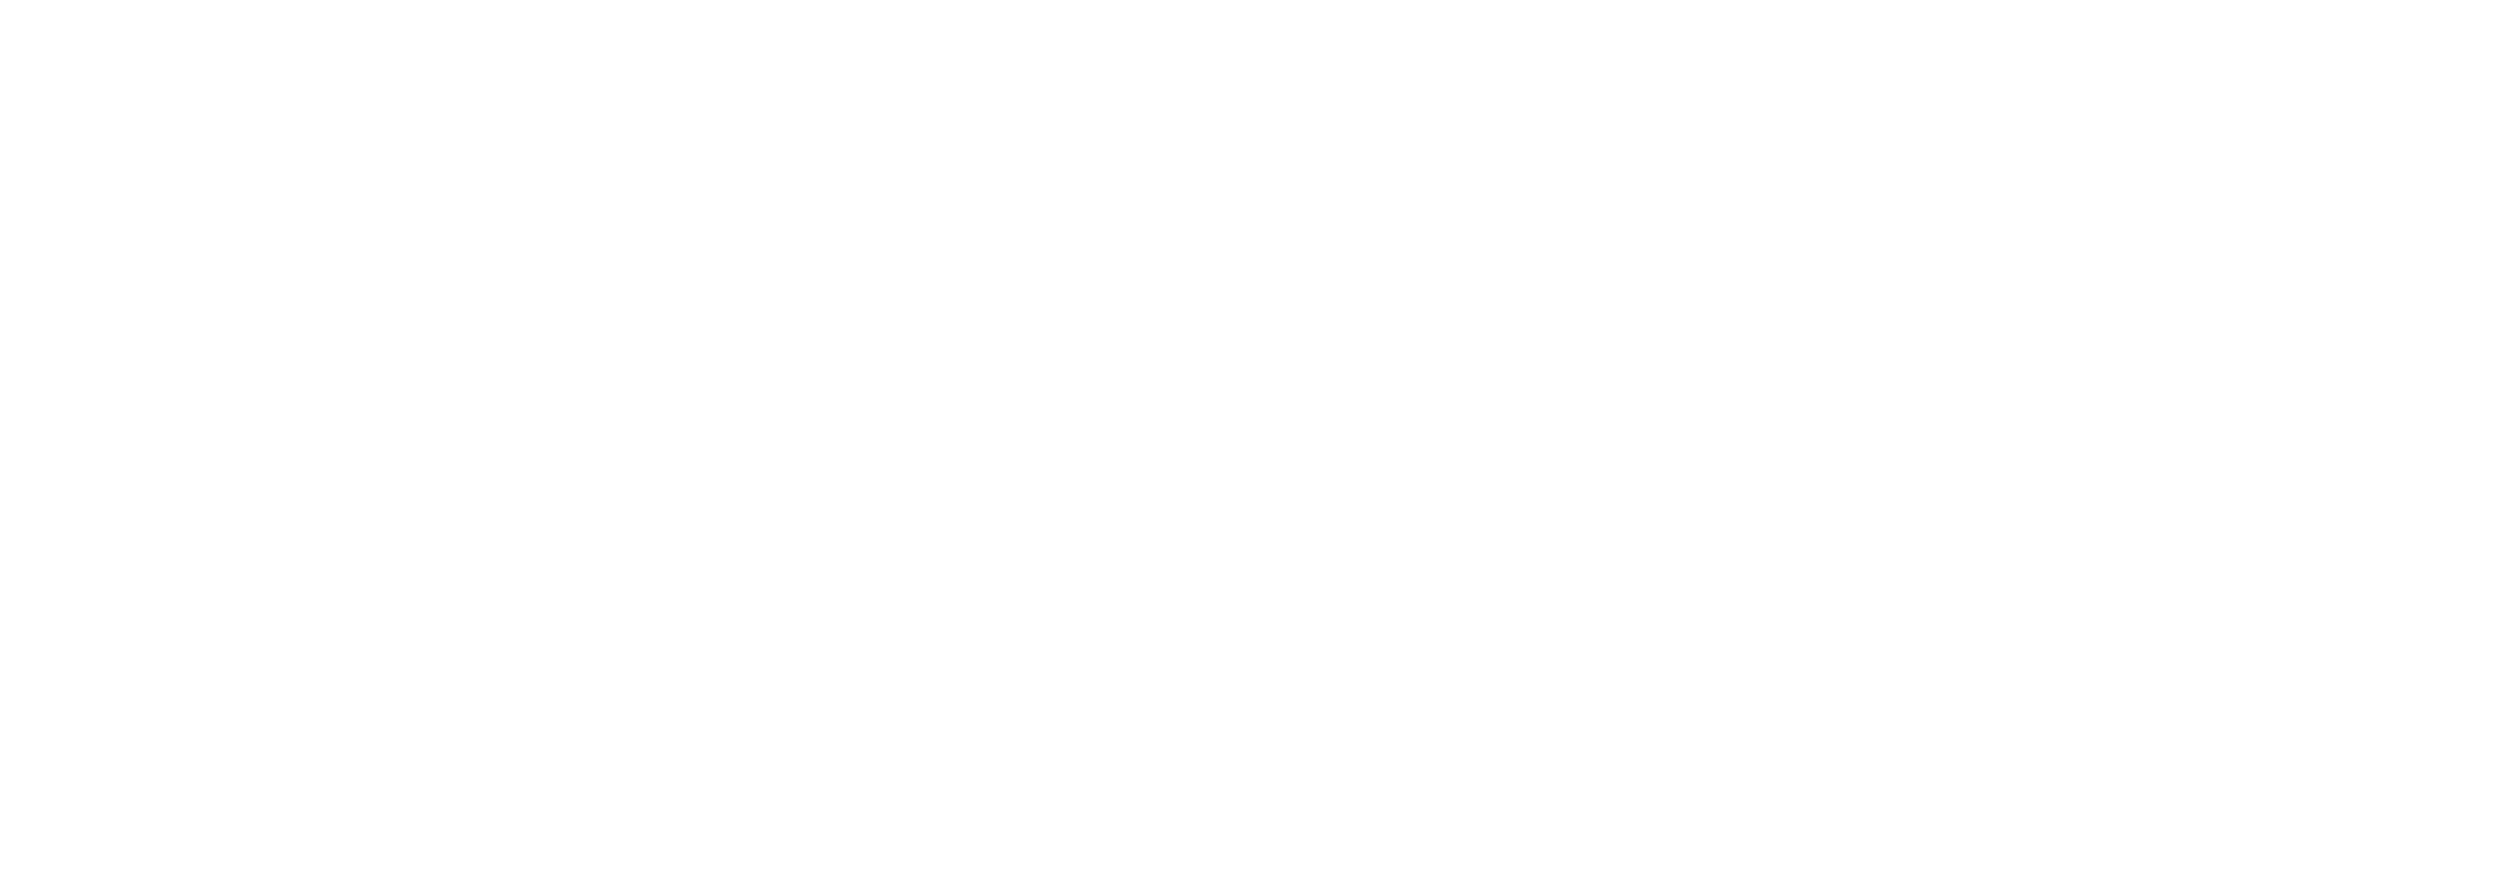 I have spent over five year developing, testing and perfecting every aspect of this strategy. It's been a rollercoaster and I've made all the expensive mistakes - so you don't have to! Enrol in the Self-Publishing fo.png